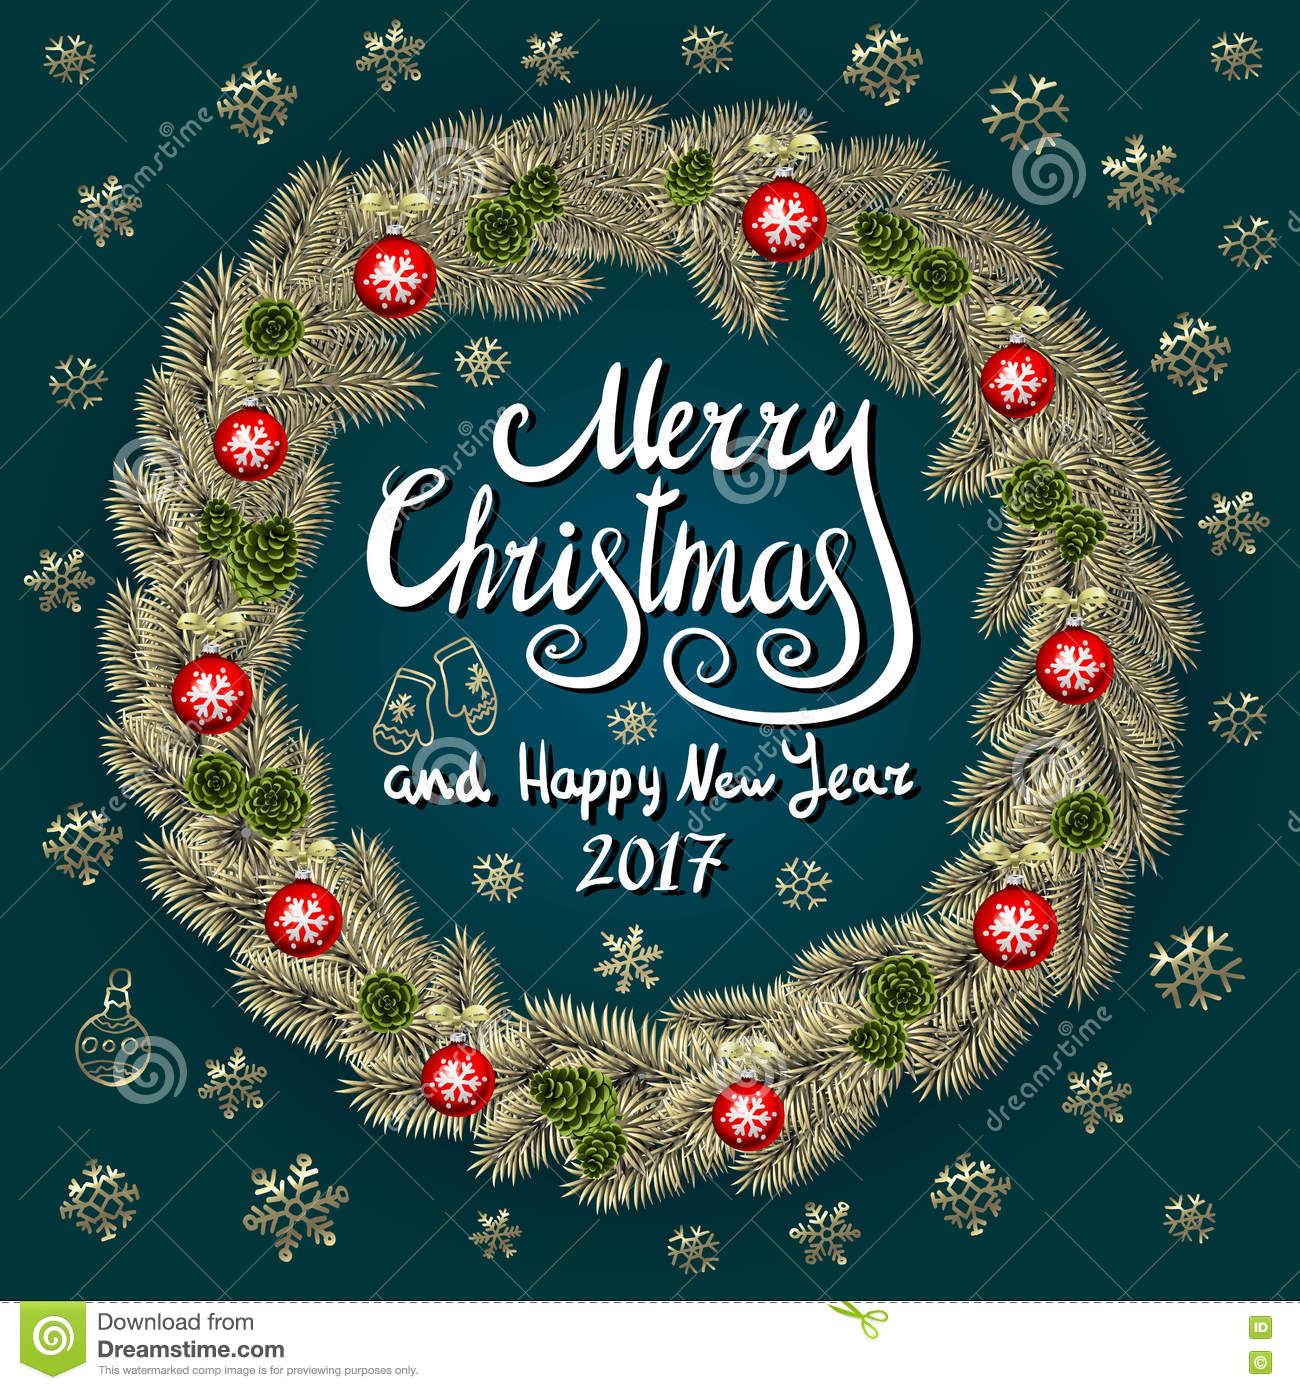 Merry Christmas And Happy New Year Latest News Images And Photos